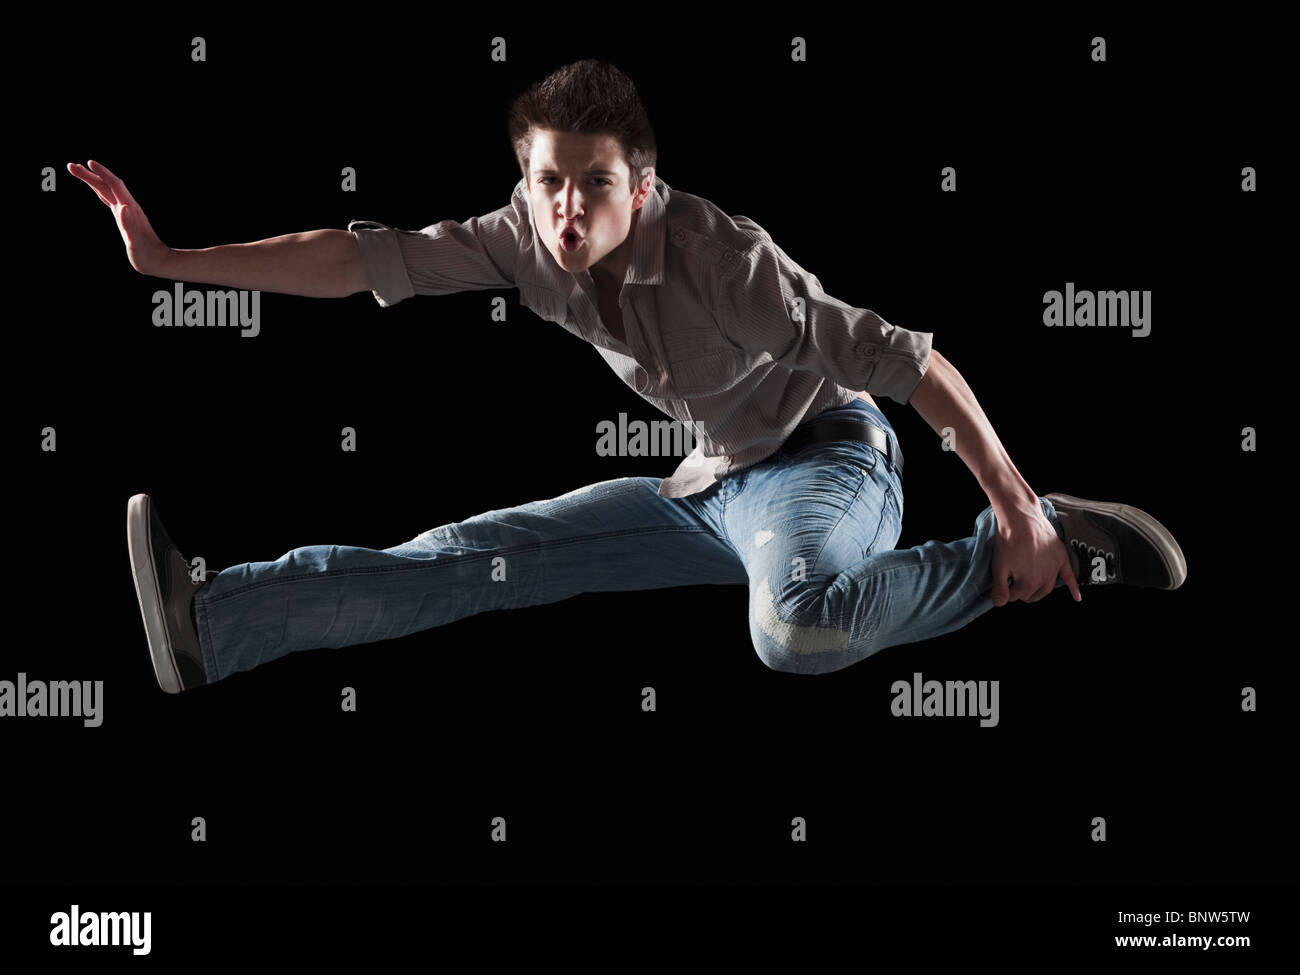 Male dancer jumping in the air Stock Photo